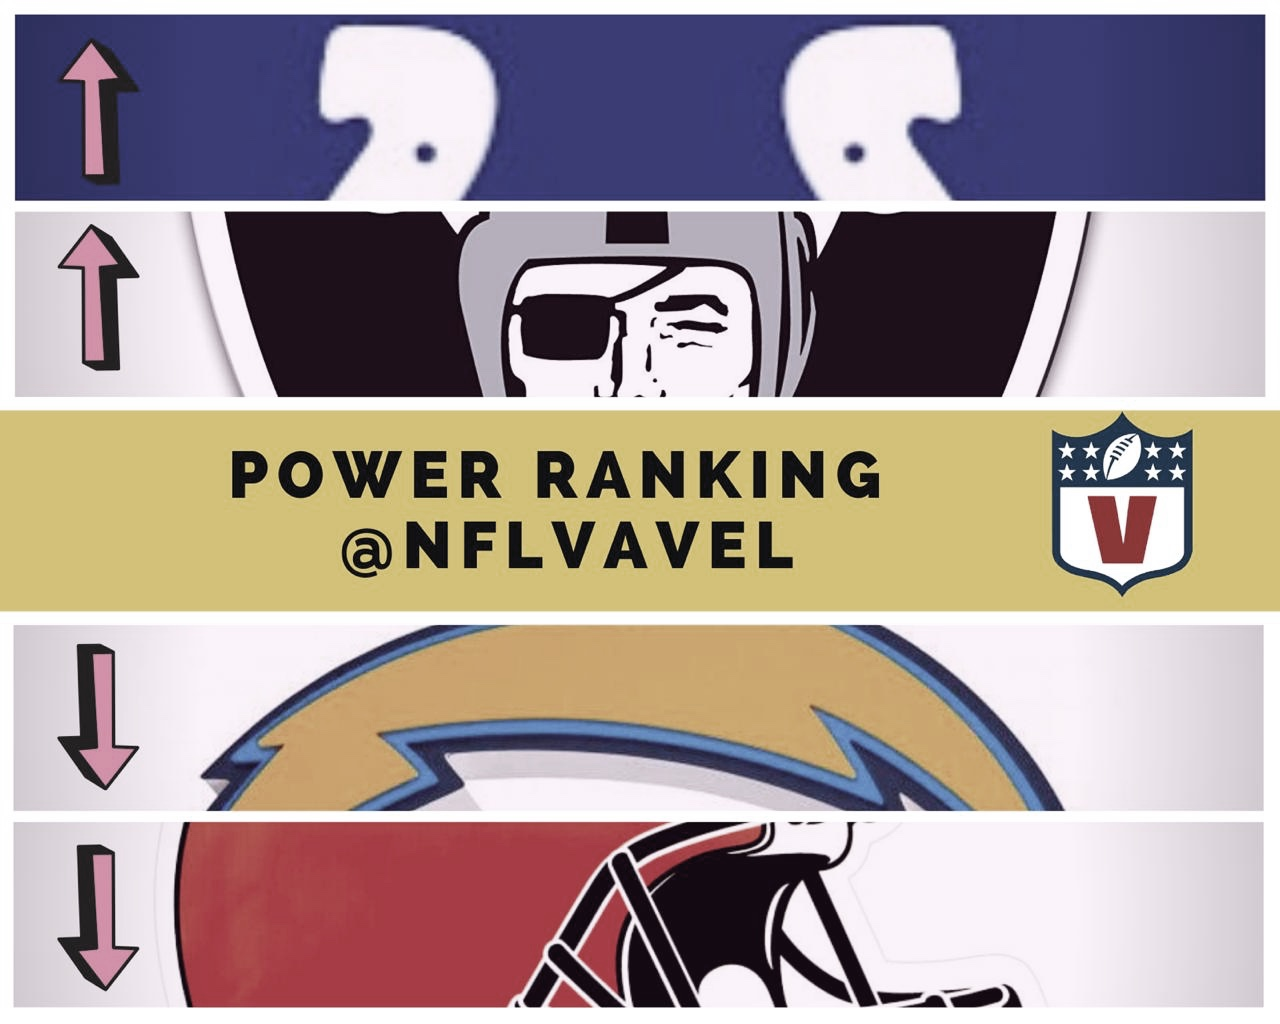 Power Ranking: Semana 5